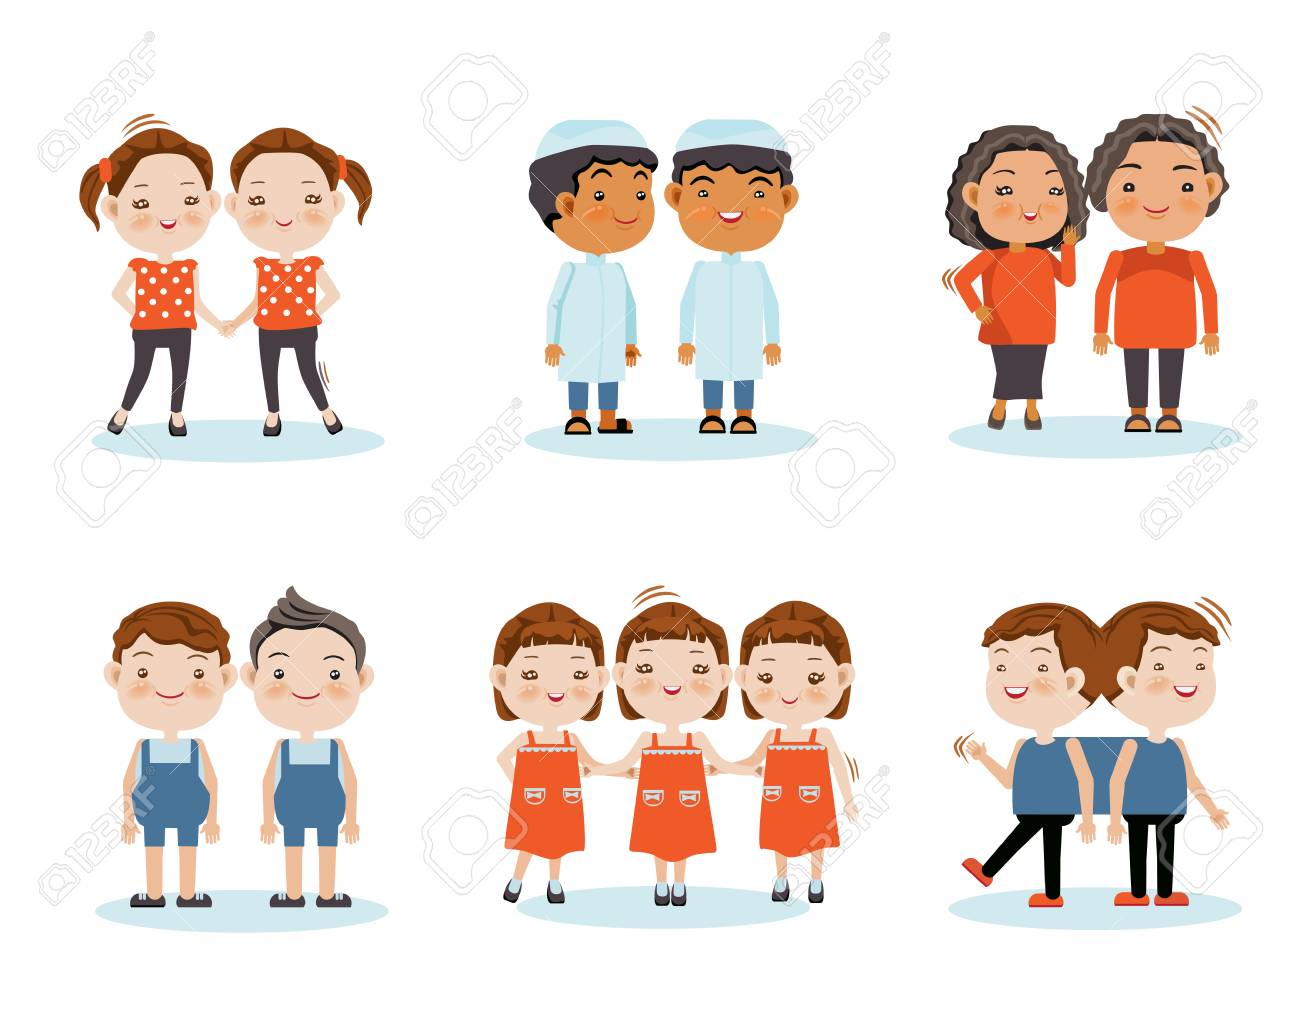 Cute little smiling boys twin, girl twins, triplets, twins stick together. Vector illustration, isolated on white background. - 97839916